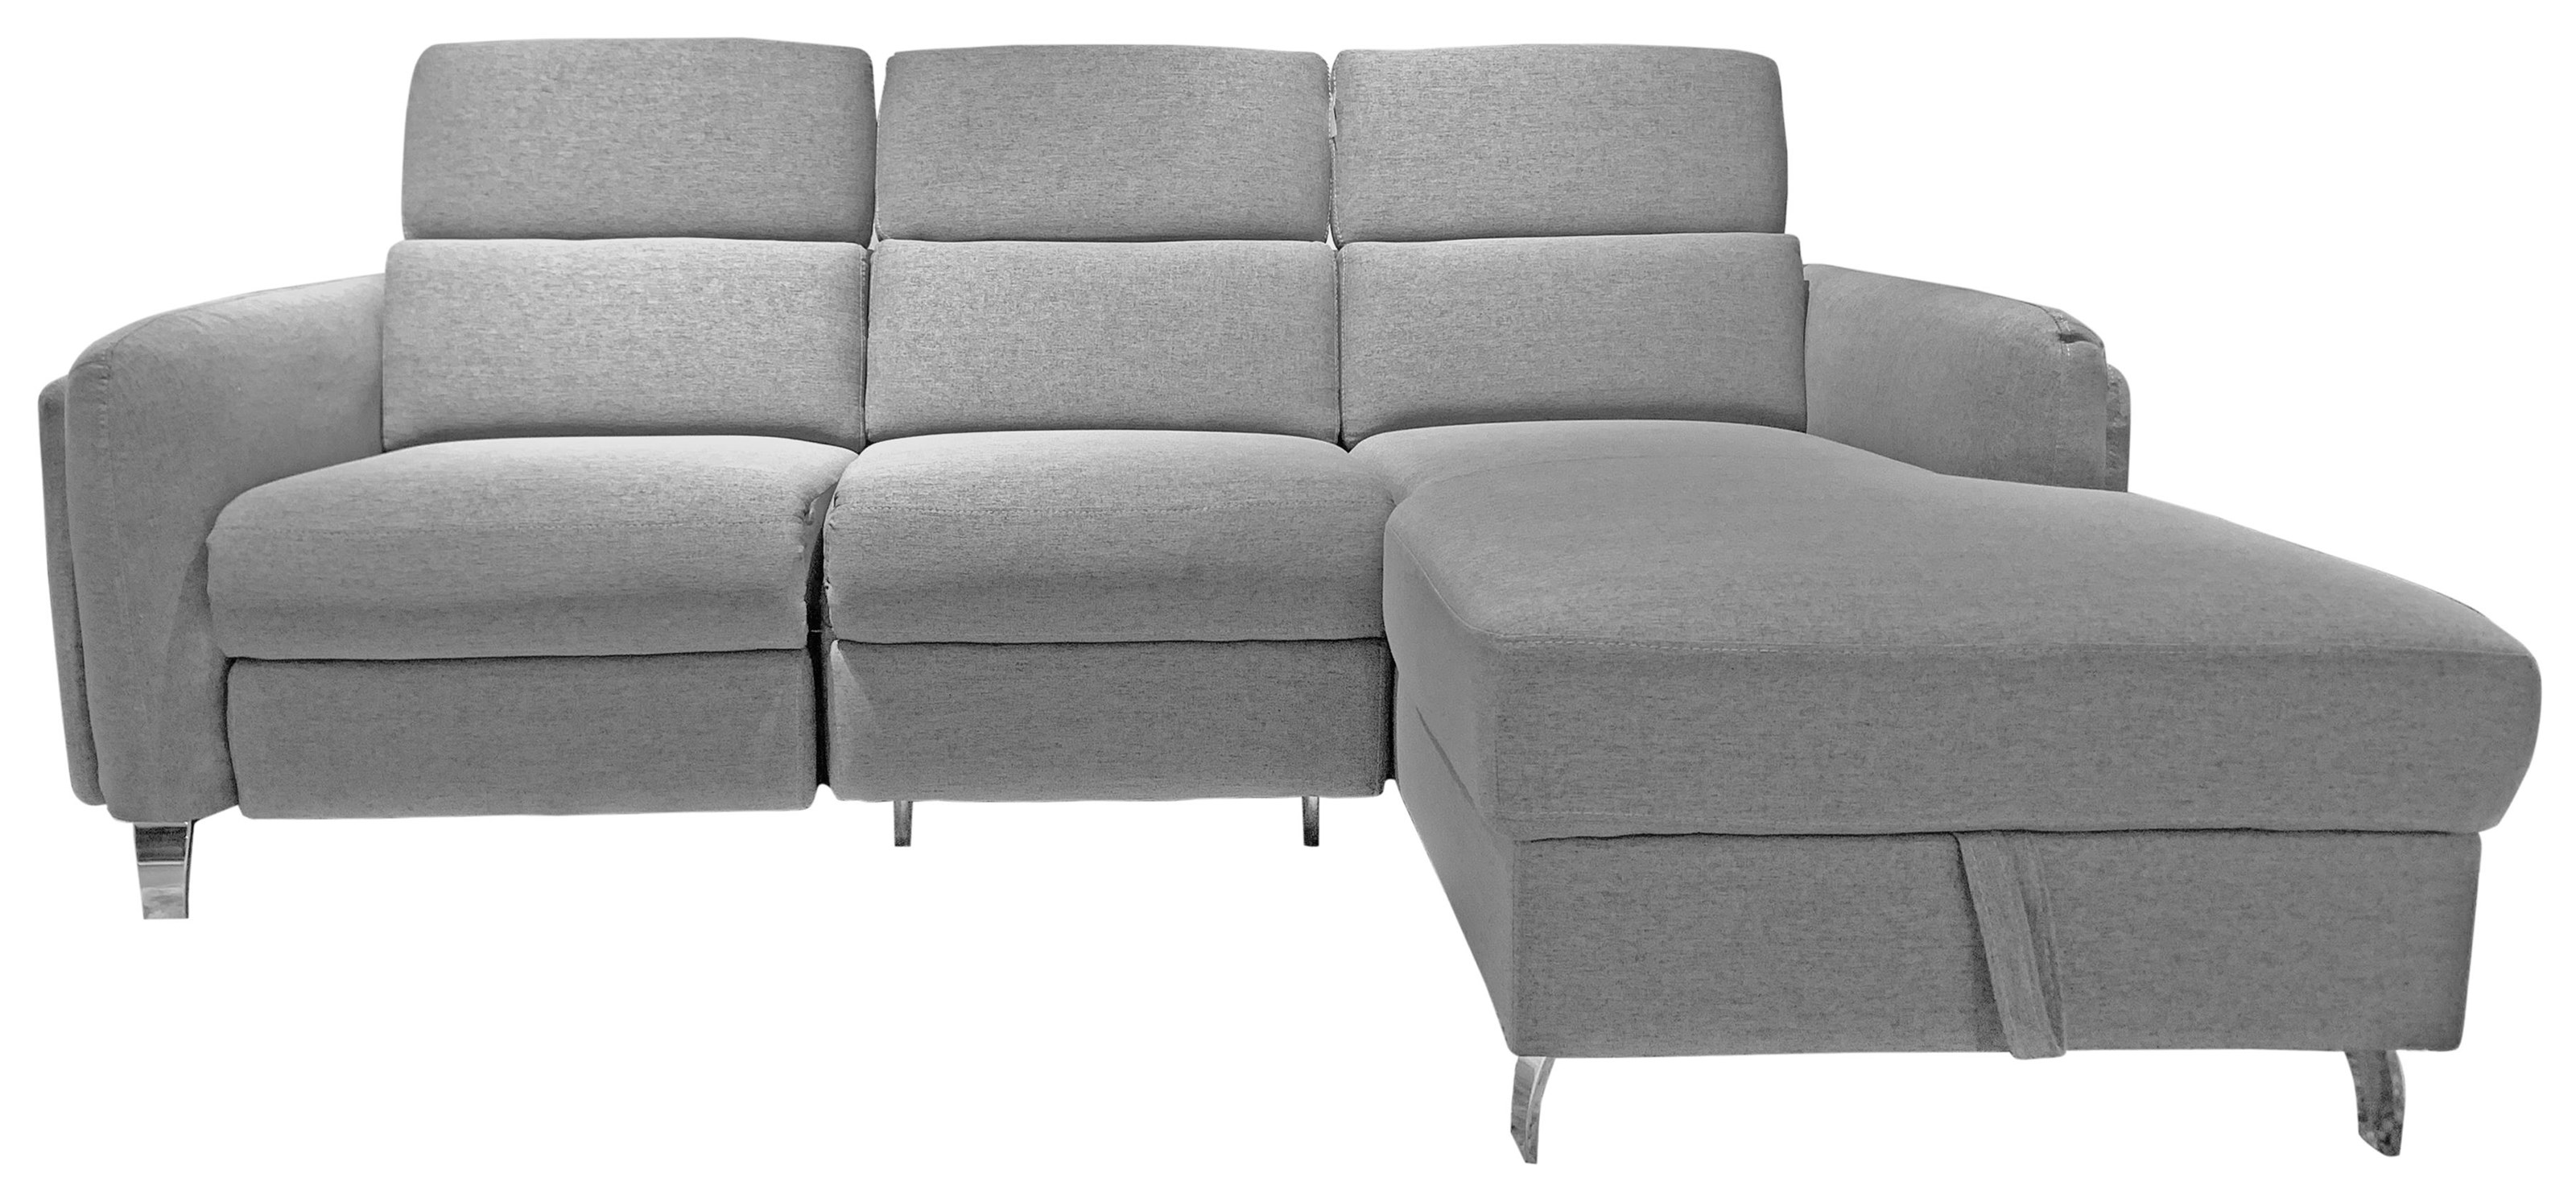 Orion Sectional by Amalfi Home Furniture at HomeWorld Furniture